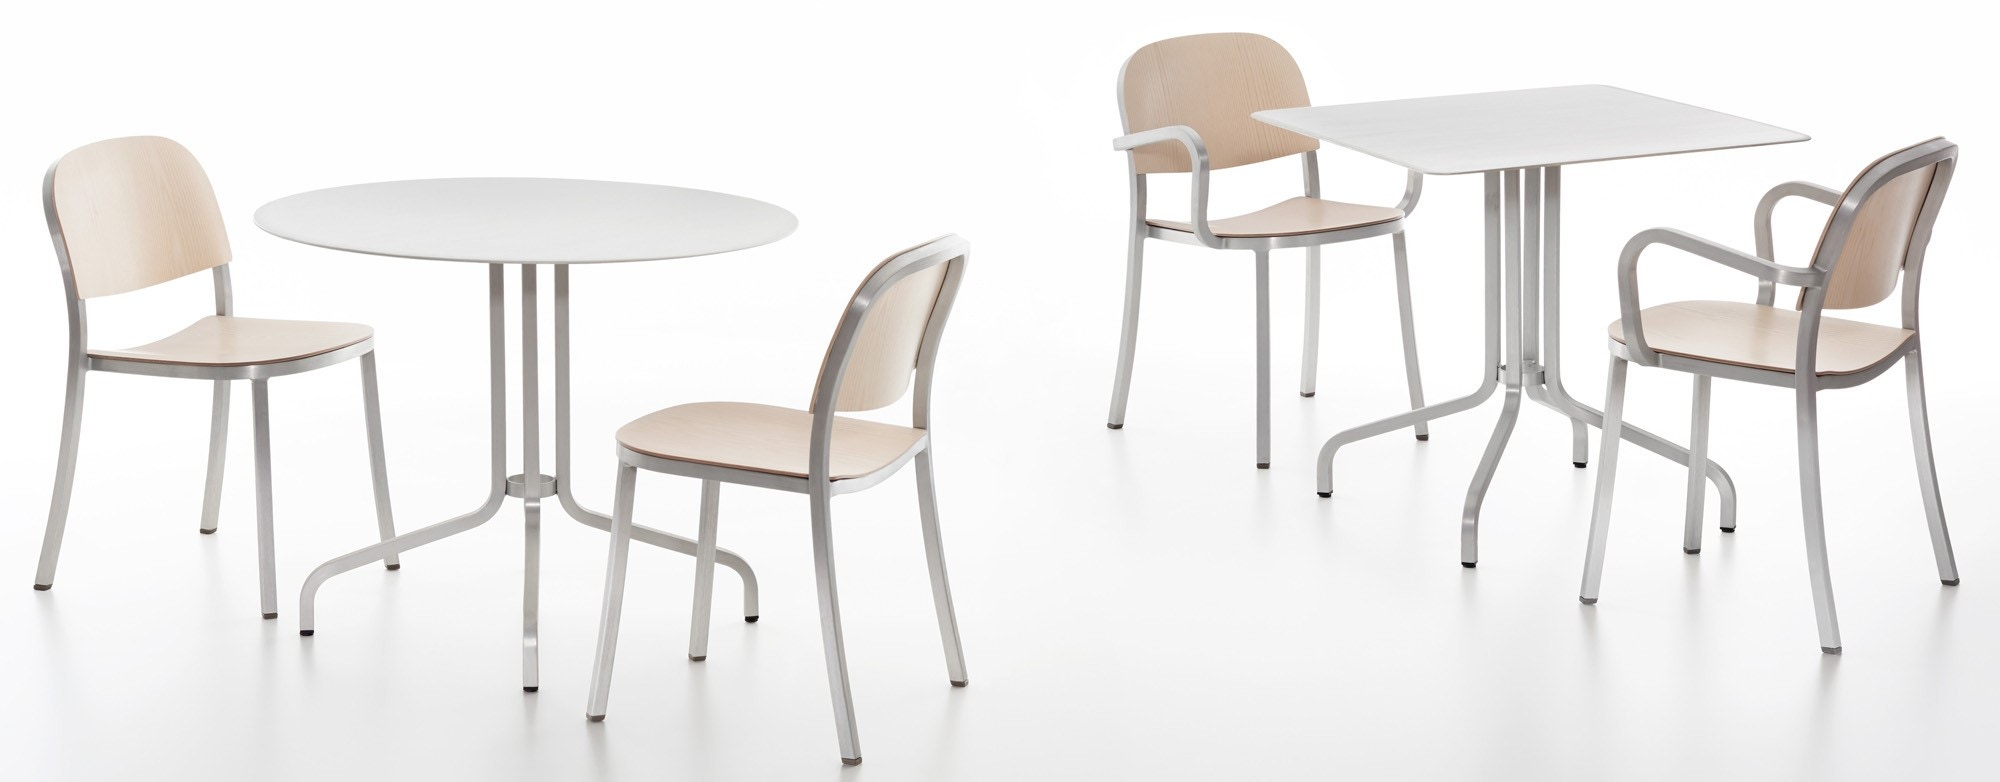 Emeco 1 INCH Cafe Table By Jasper Morrison, Round or Square